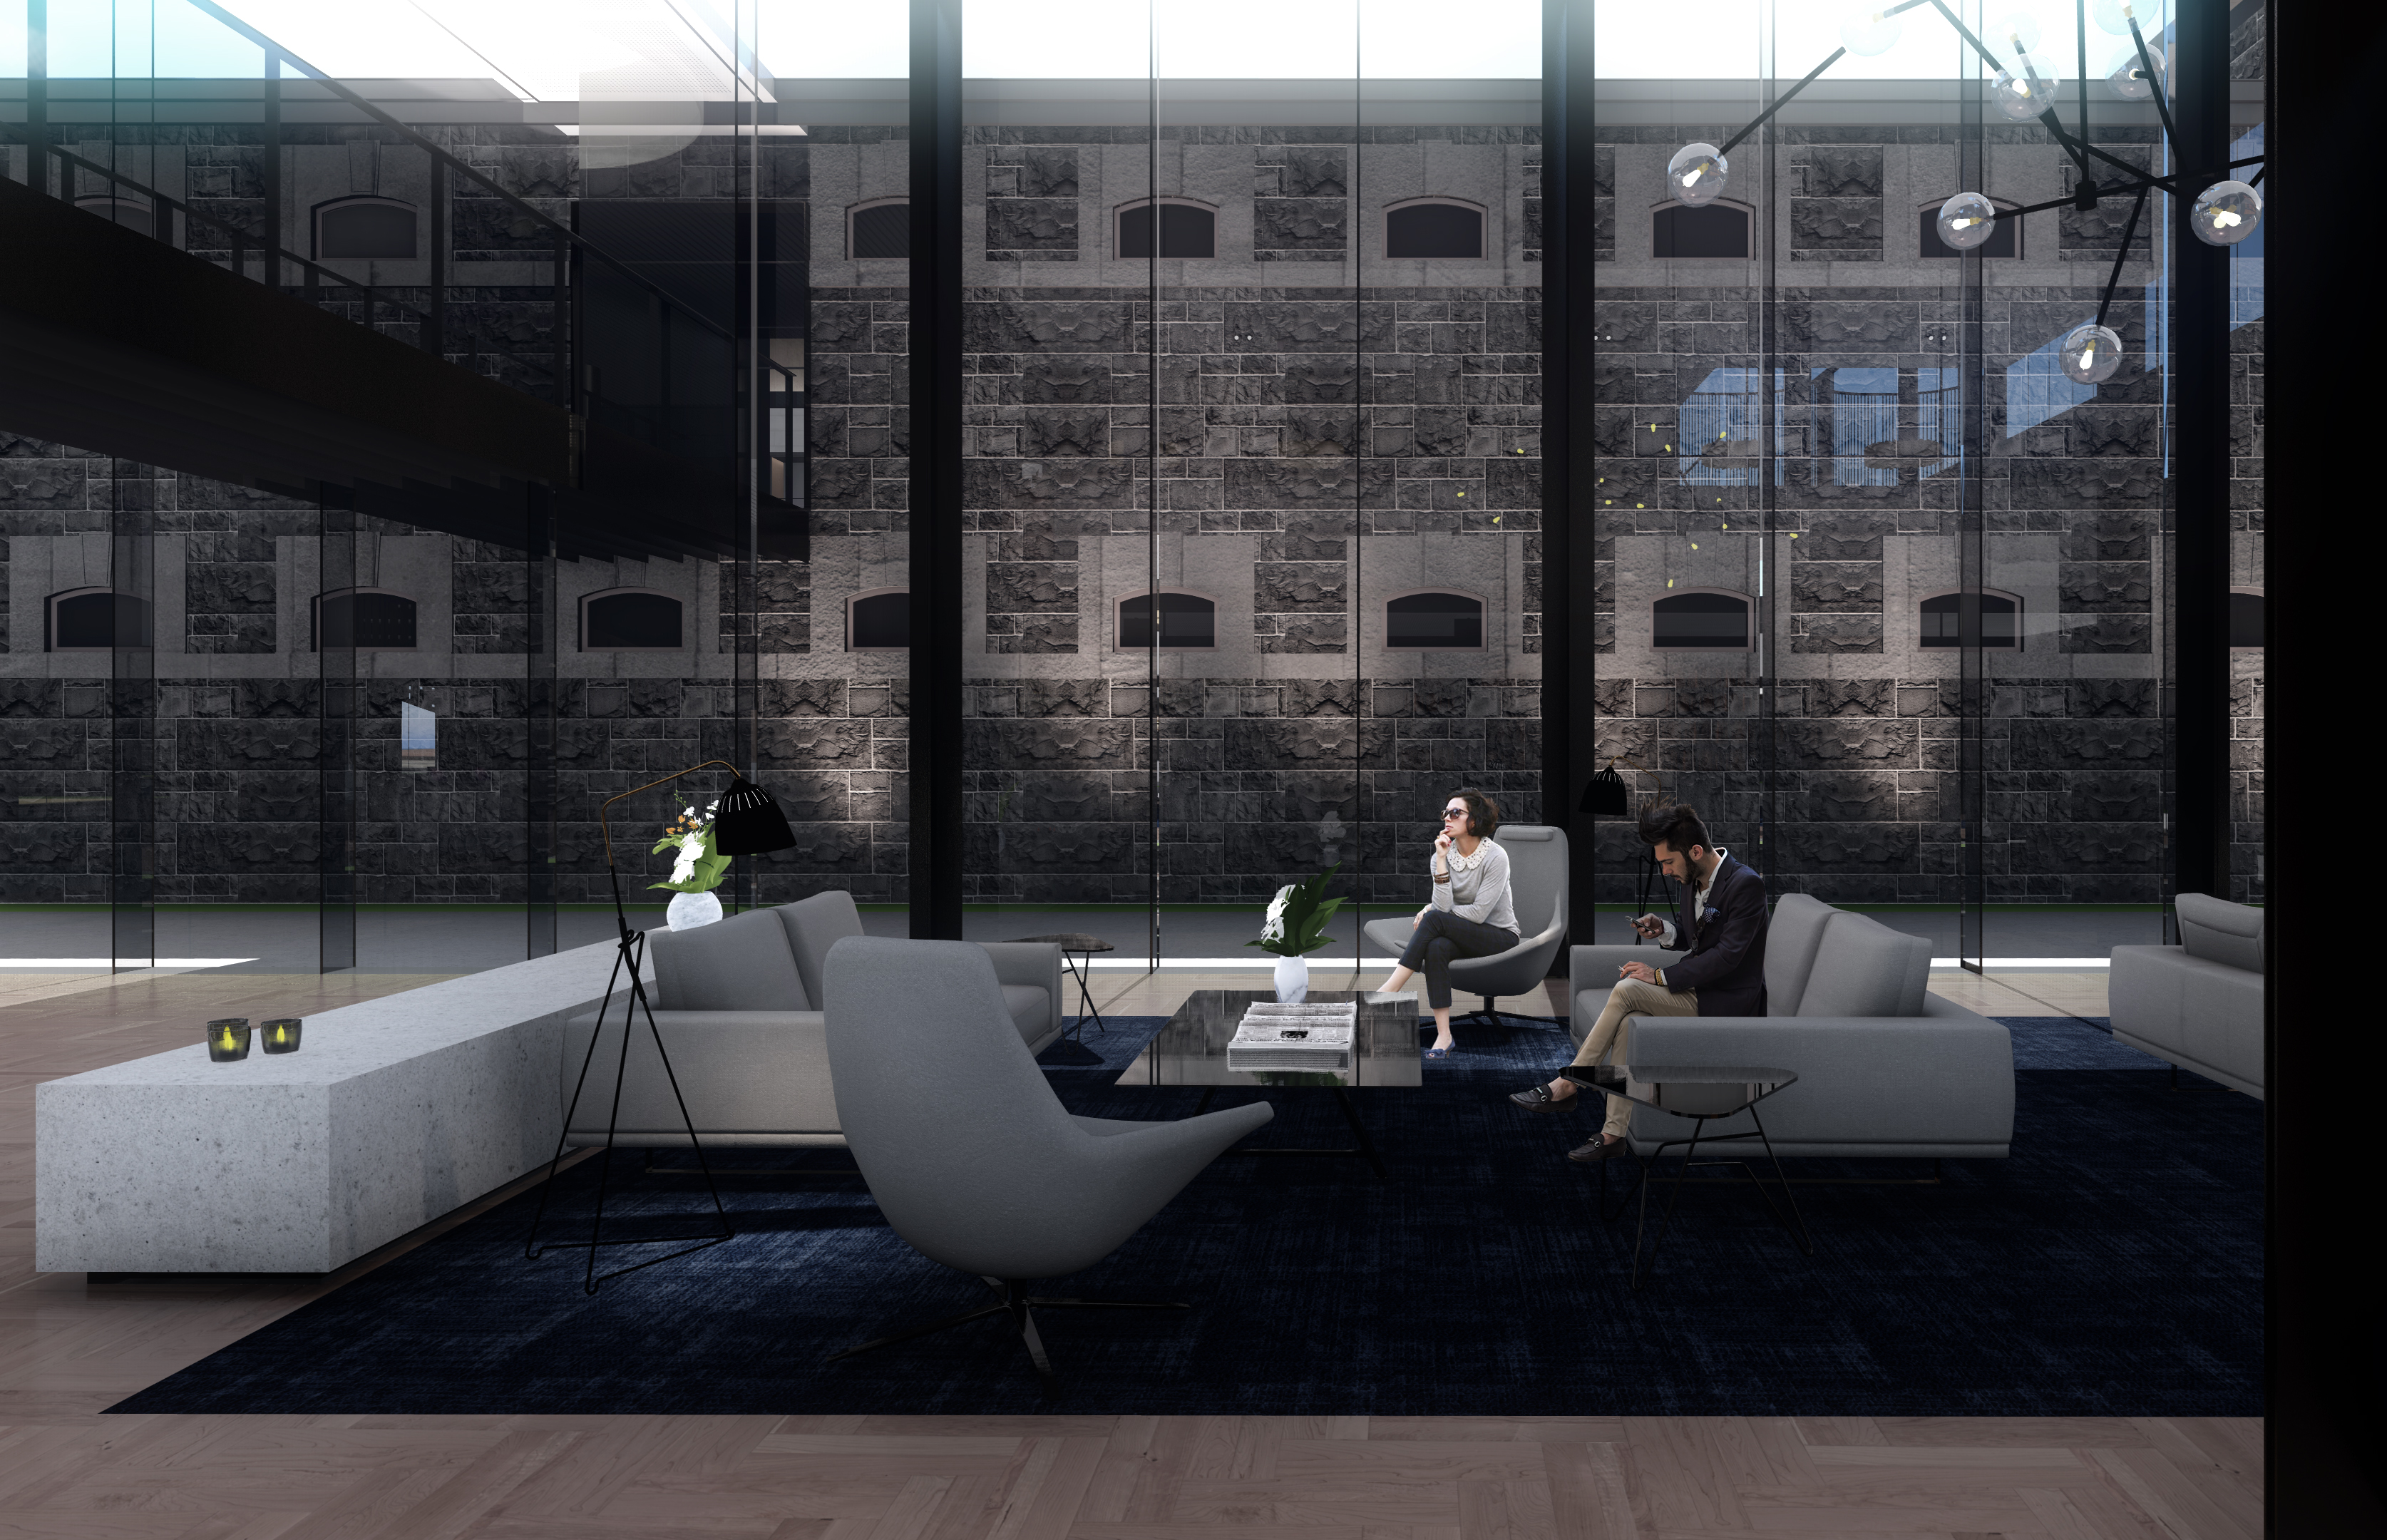 The original prison's facade can still be seen but modern architecture will create the sumptuous